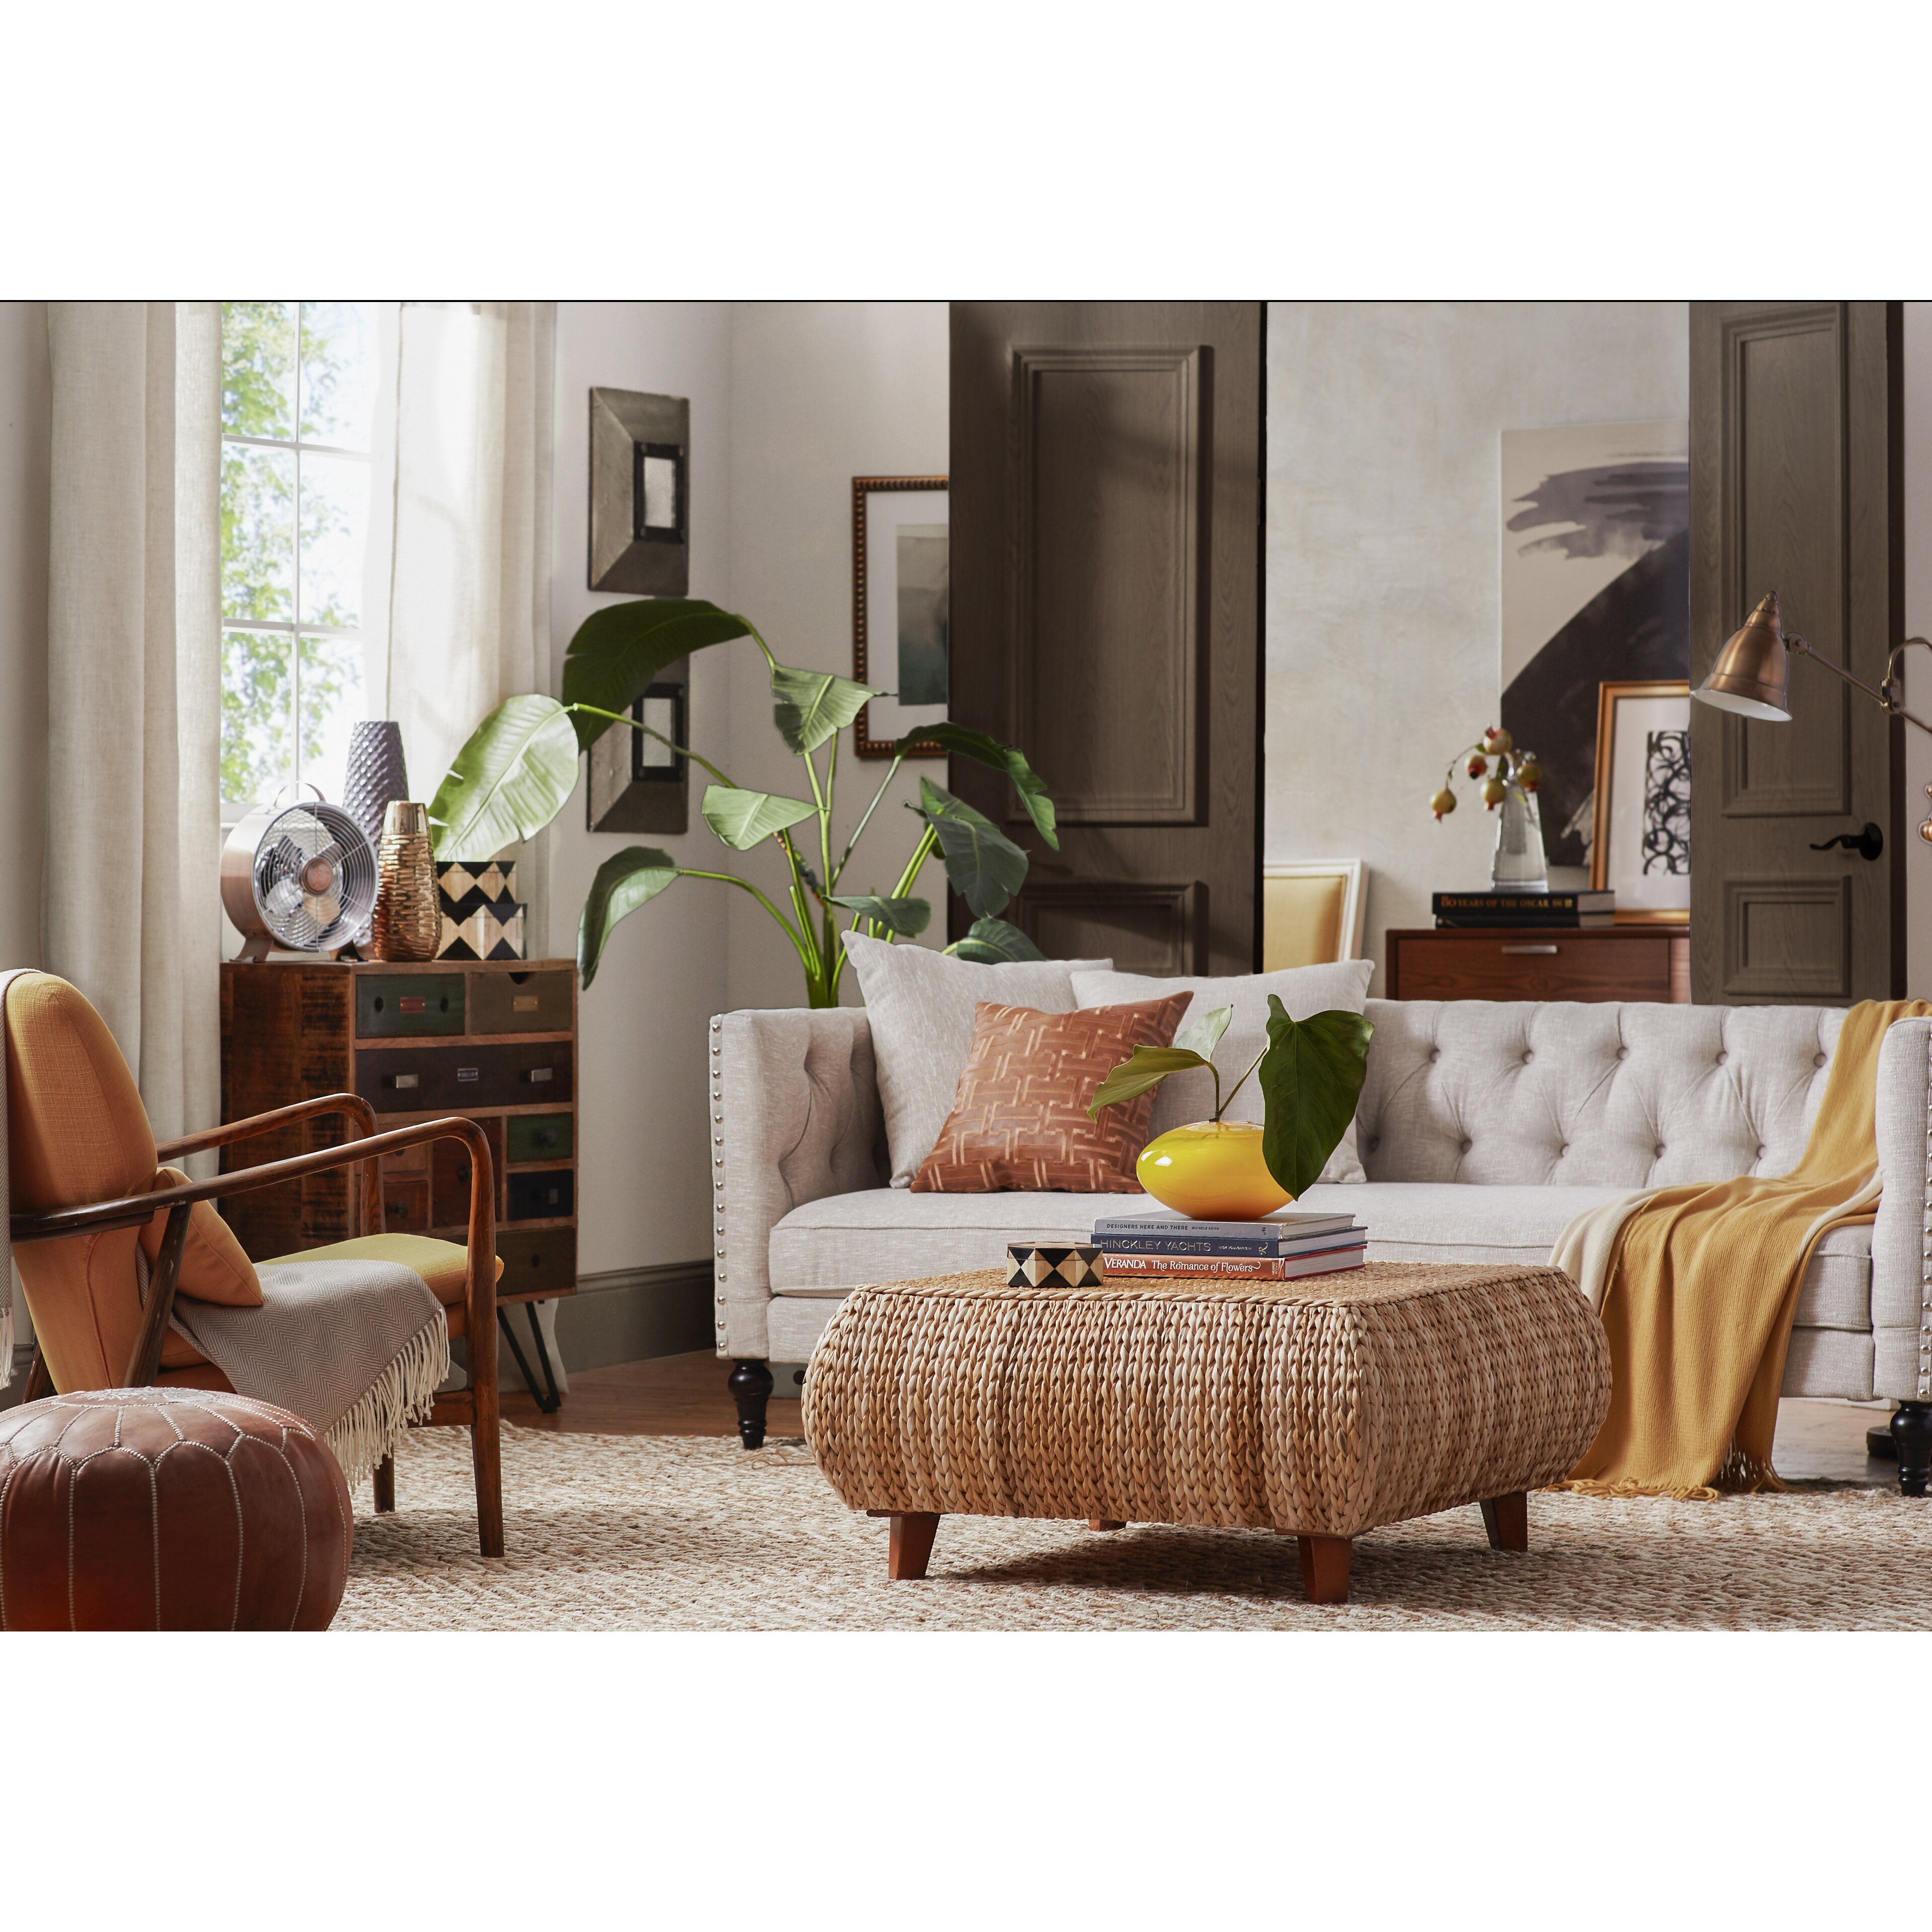 Gallerie Decor Bali Breeze Coffee Table & Reviews